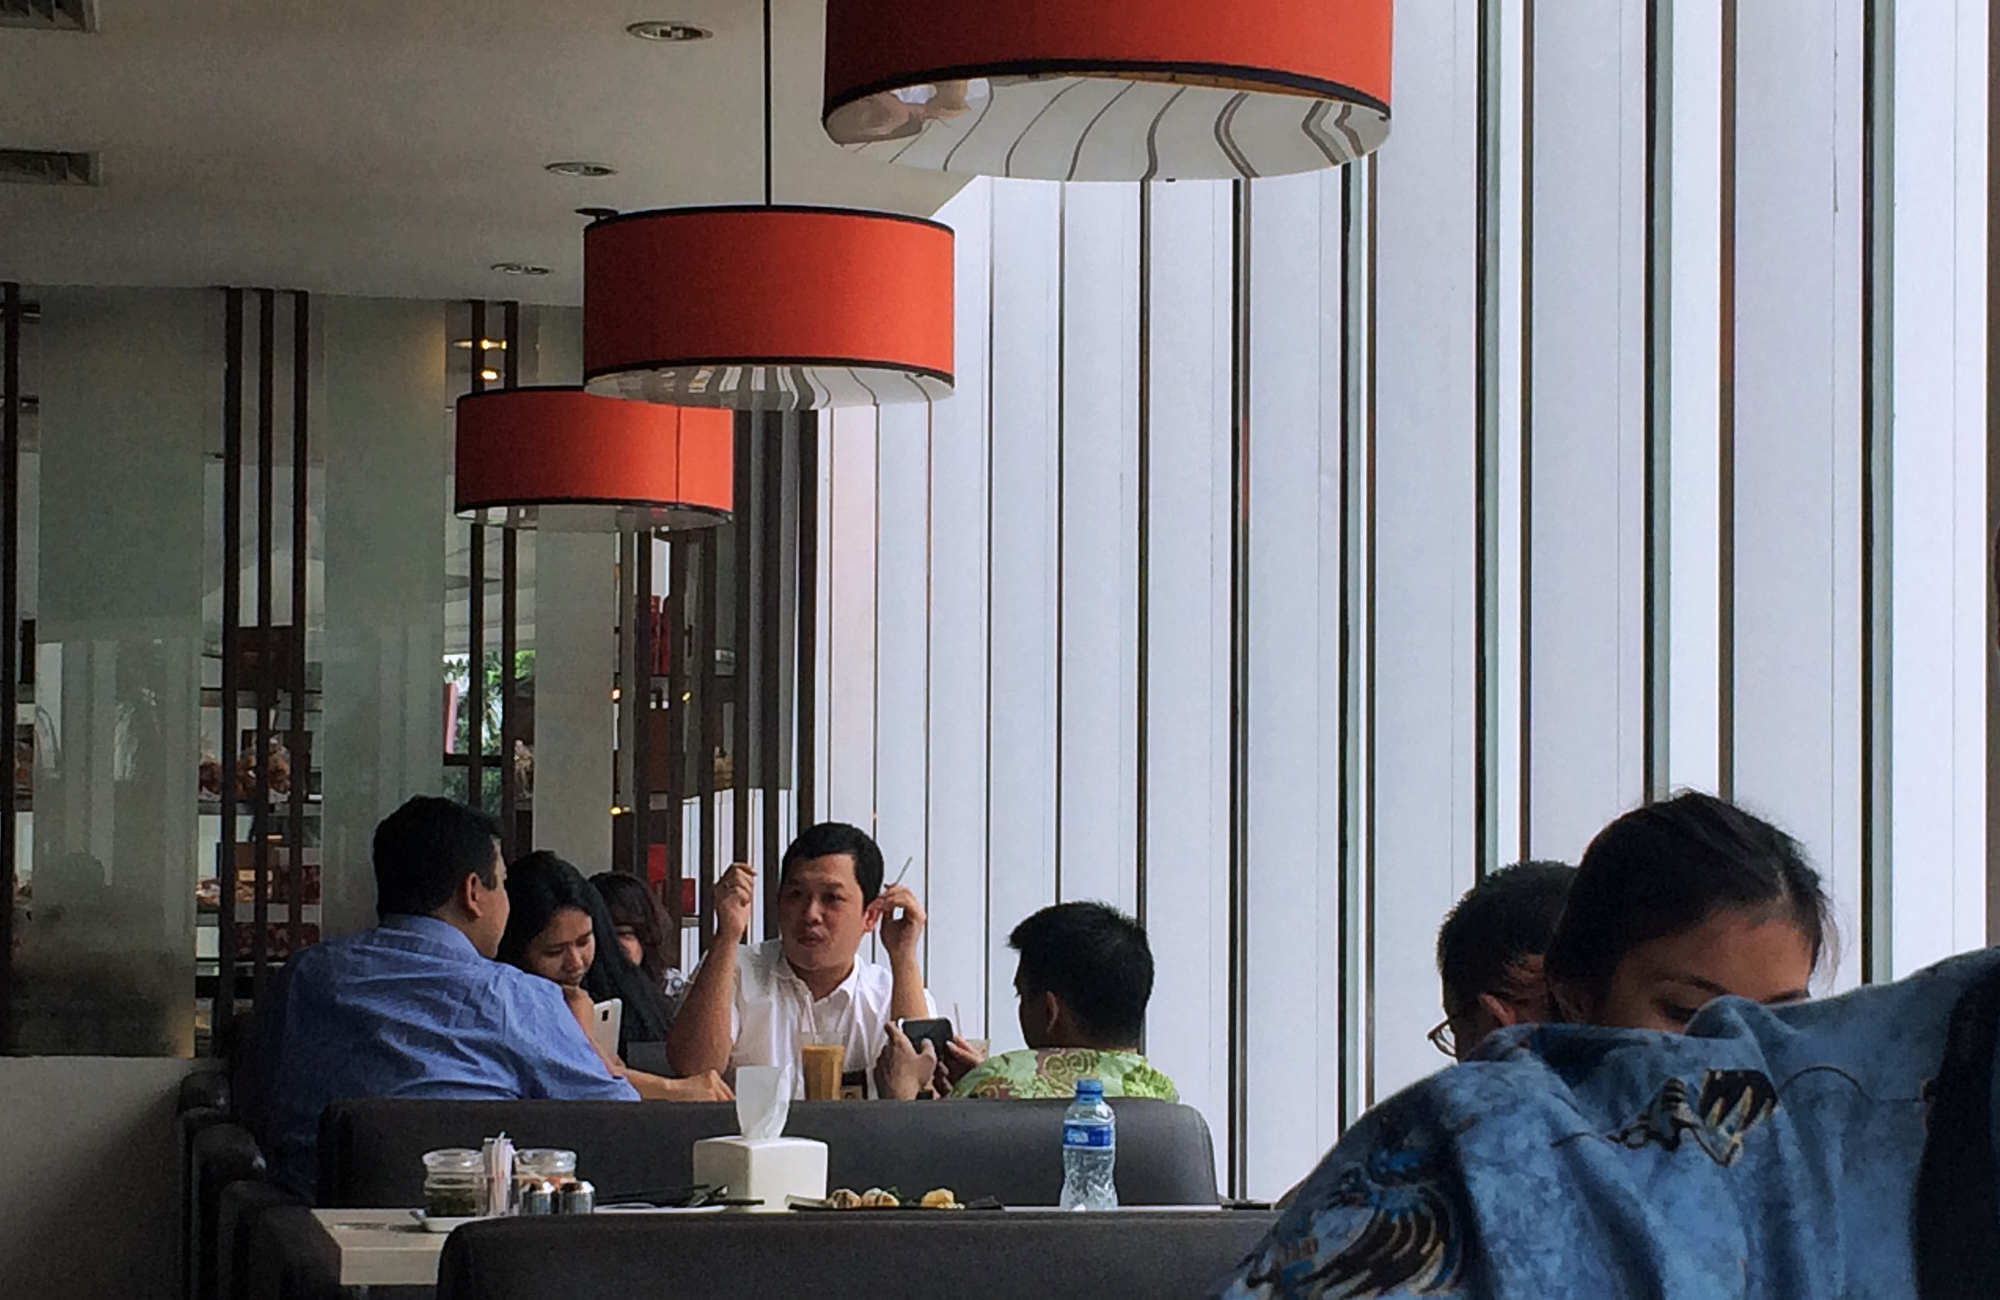 Some restaurants in Indonesia still provide indoor smoking sections for diners.